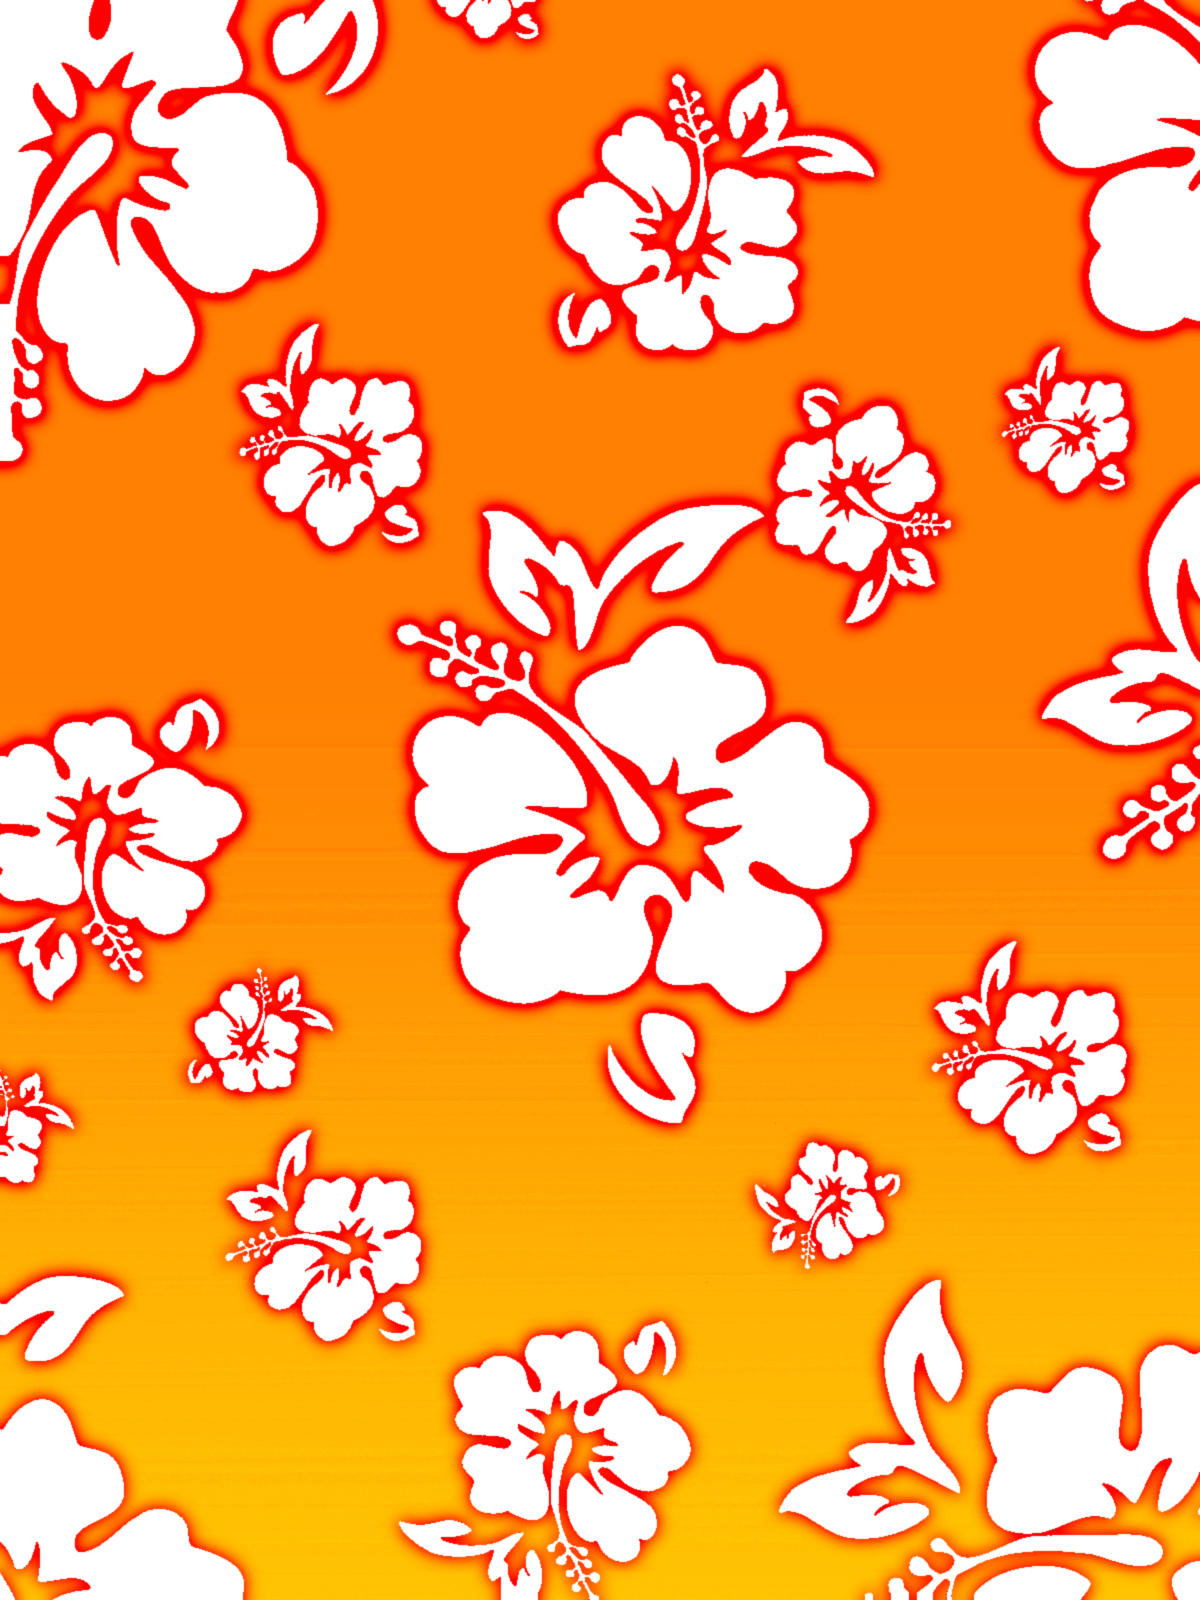 Hawaiian Flower Background By Rengurenge On Deviantart